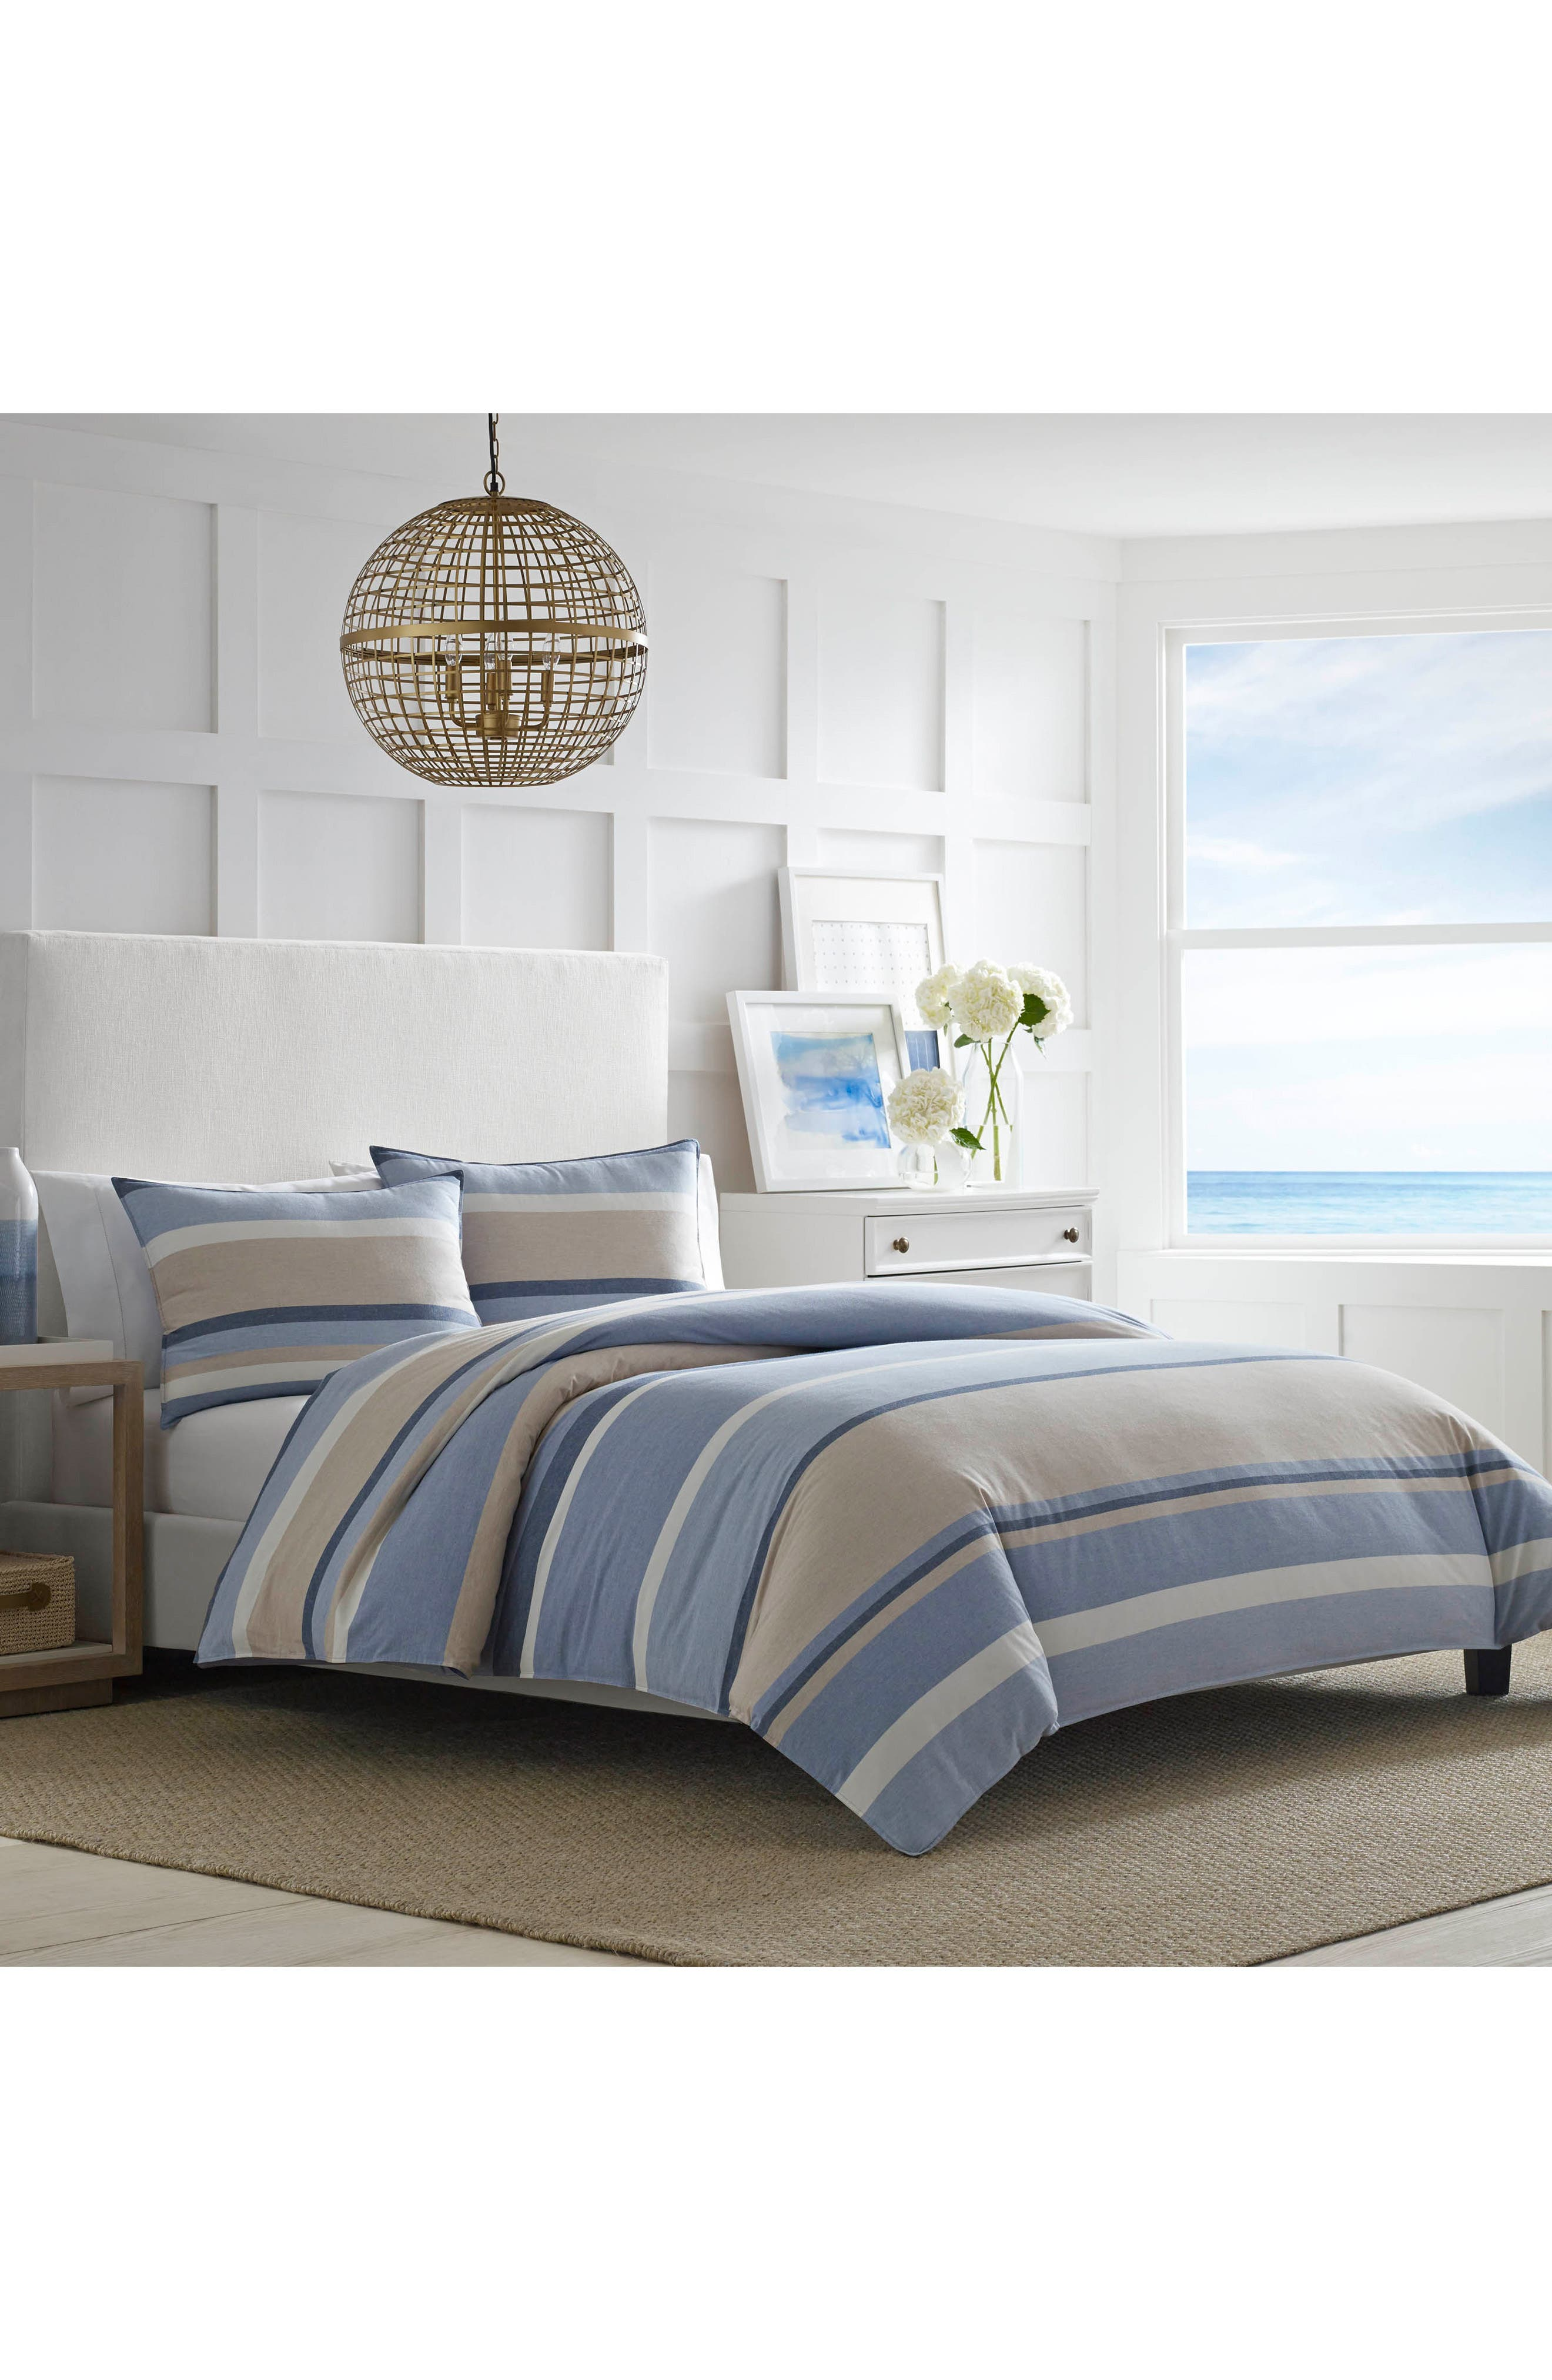 Abbot Duvet Cover & Sham Set,                             Main thumbnail 1, color,                             Medium Blue